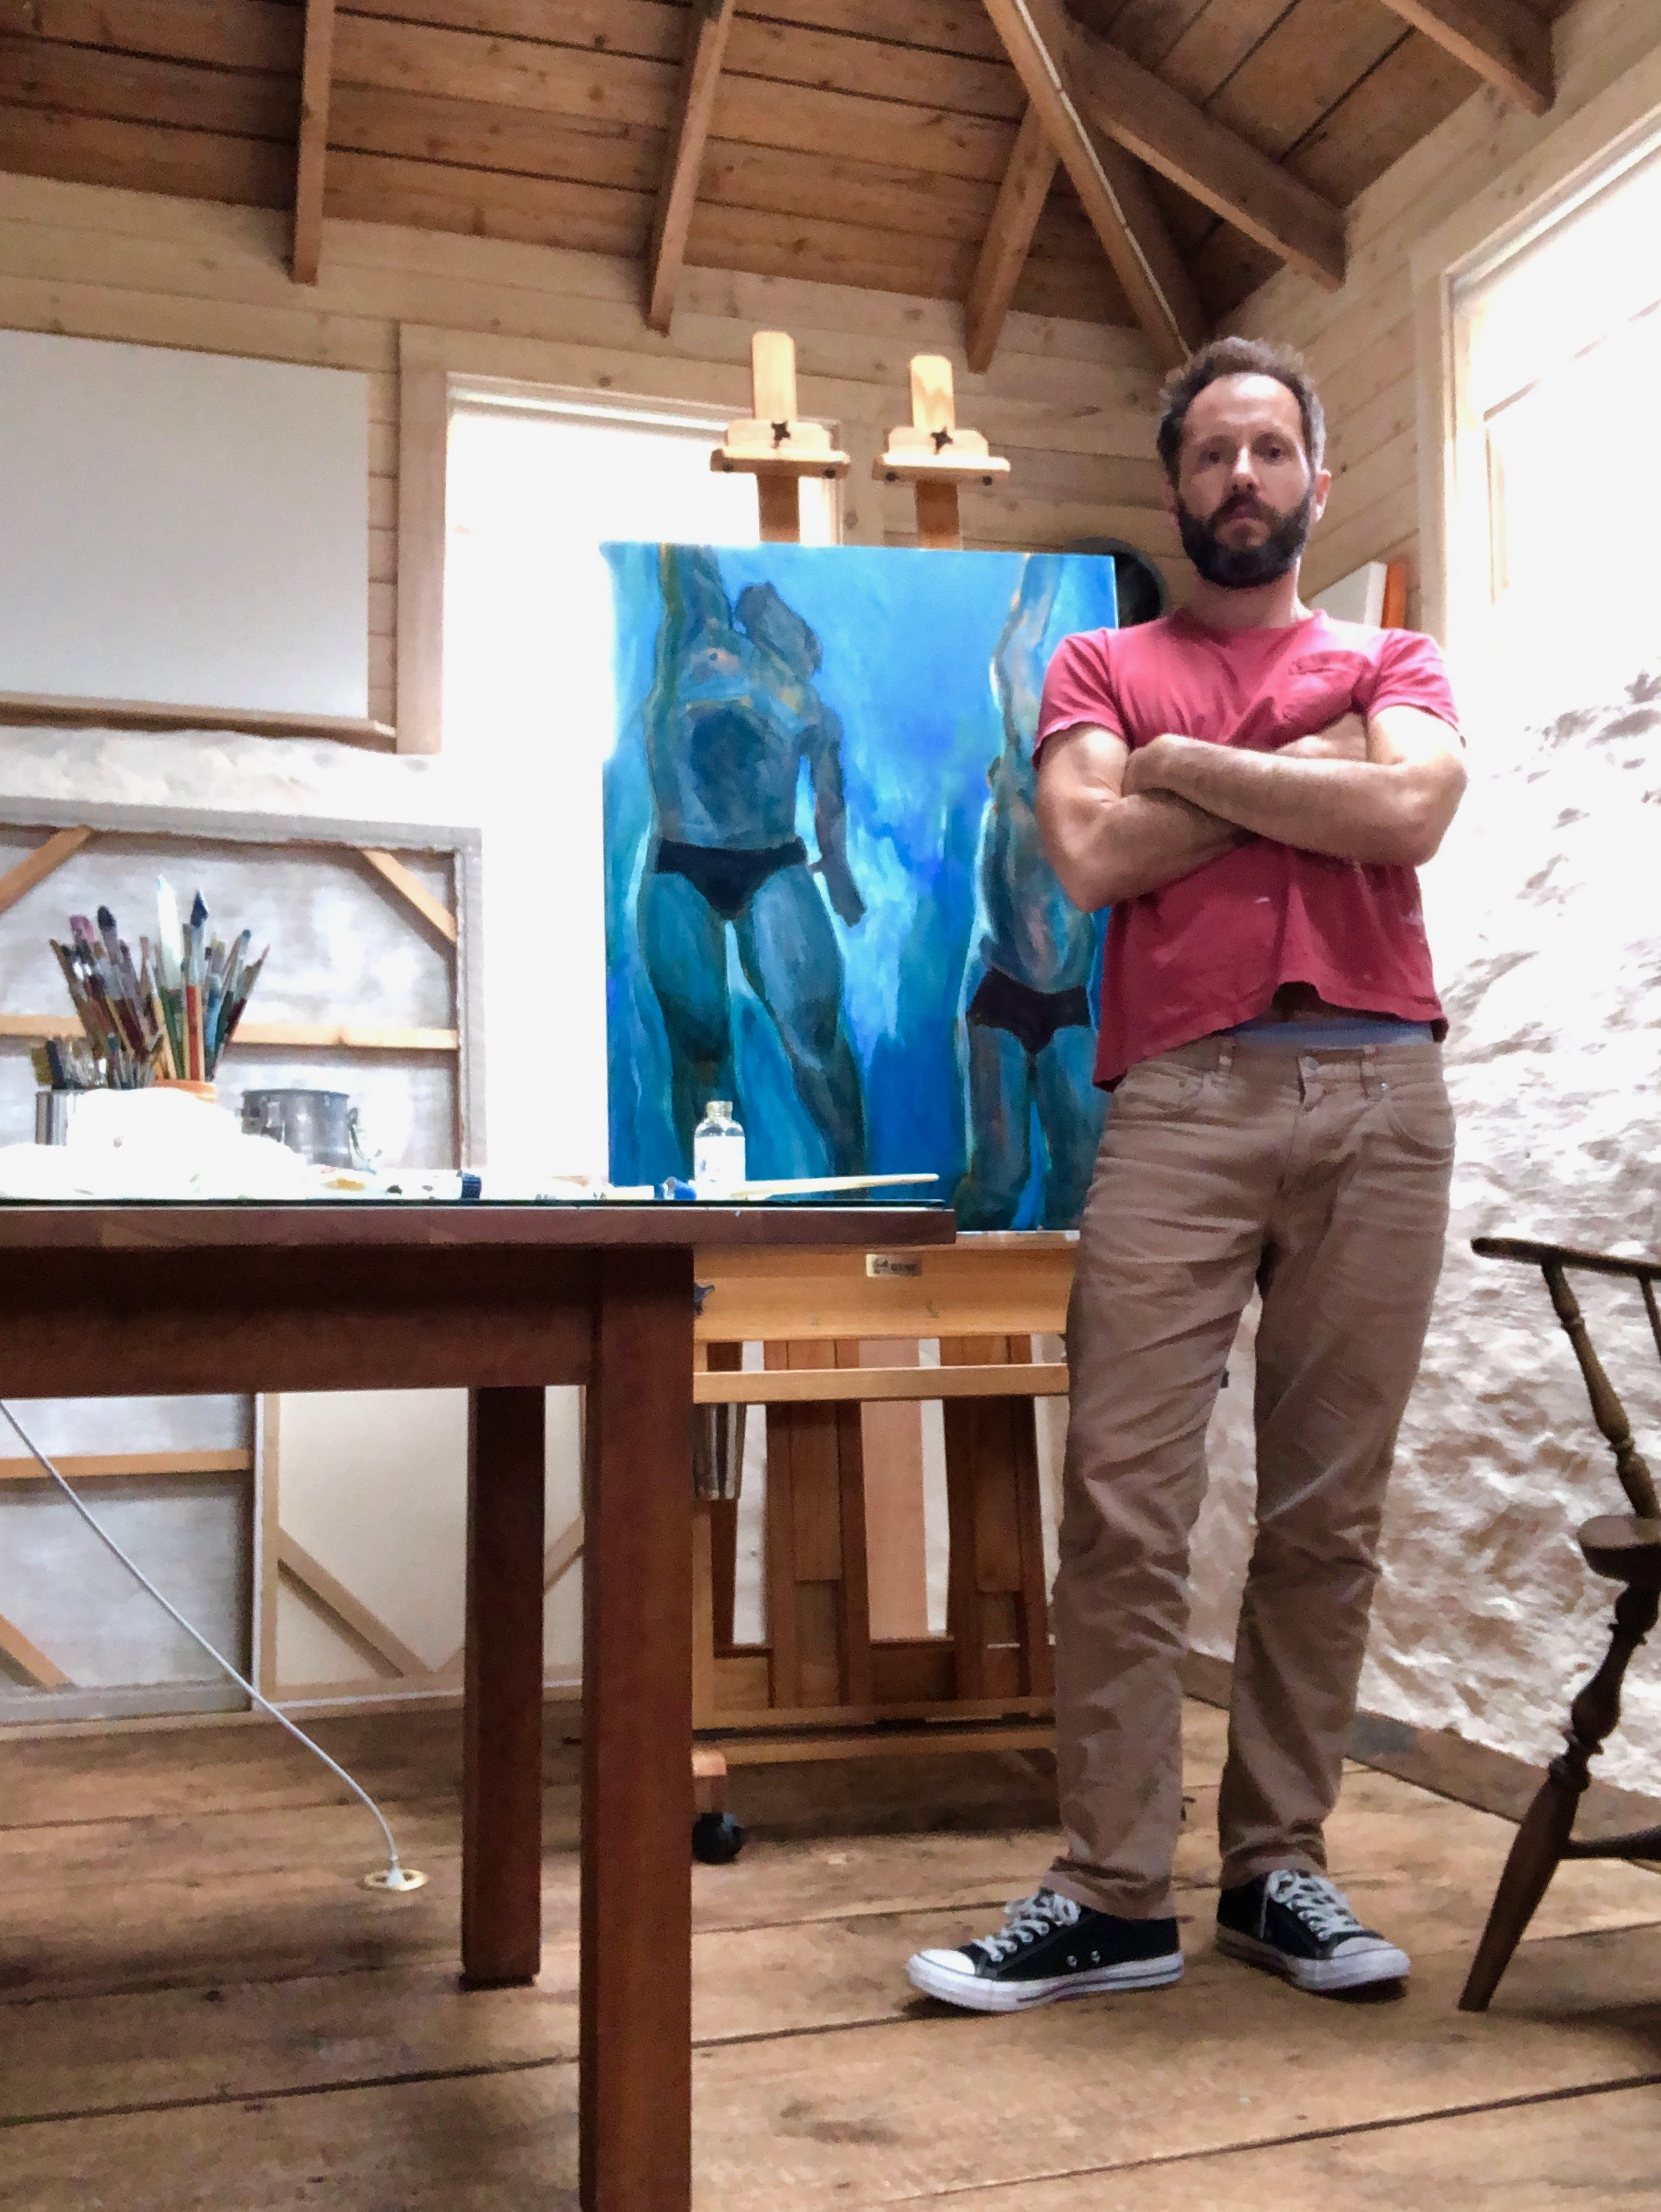 IN CONVERSATION WITHMICHAEL WALDEN - a gallery gathering with wine, words and artistic wisdom from LAND•SEA•SKY featured and popular, and inspiring artist and printmaker Michael WaldenThursday September 12th 6pmpublic is welcome reservations urged